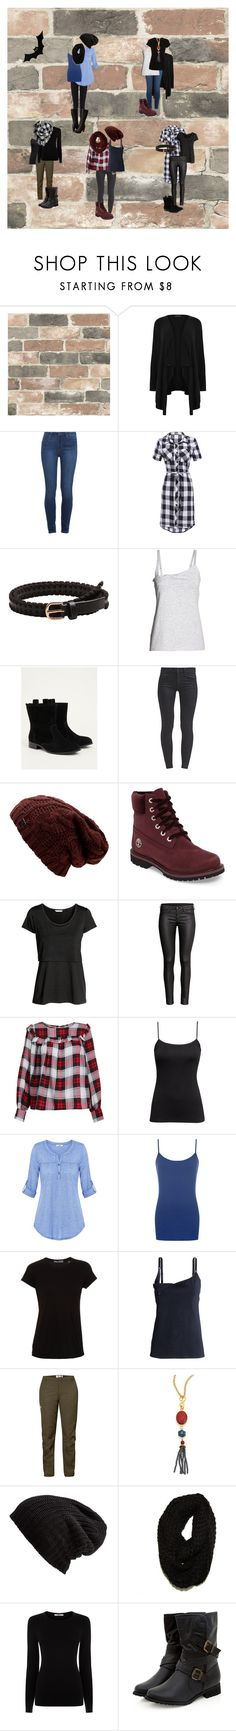 """AW 17/18"" by eryenn-drakkar ❤ liked on Polyvore featuring Wall Pops!, New Look, Paige Denim, MANGO, Torrid, Timberland, H&M, James Perse, WearAll and Vince"